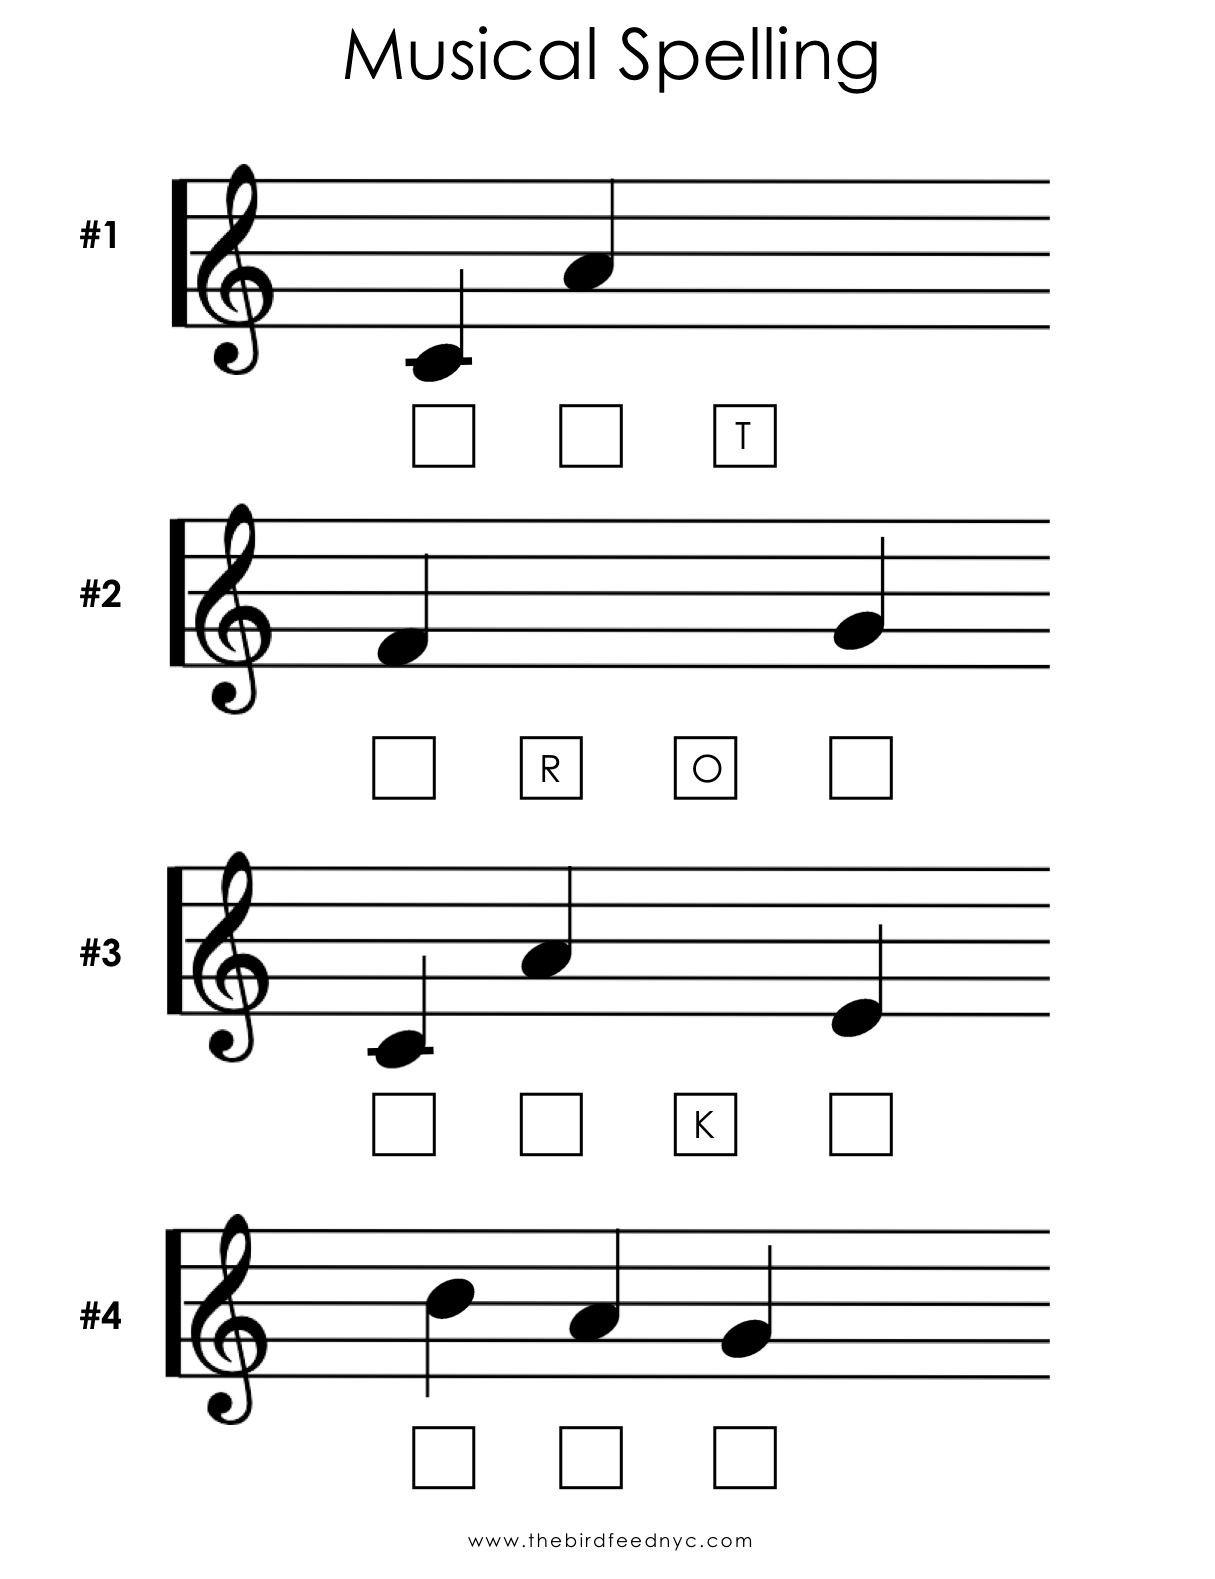 Musical Spelling Activity Sheet For Kids